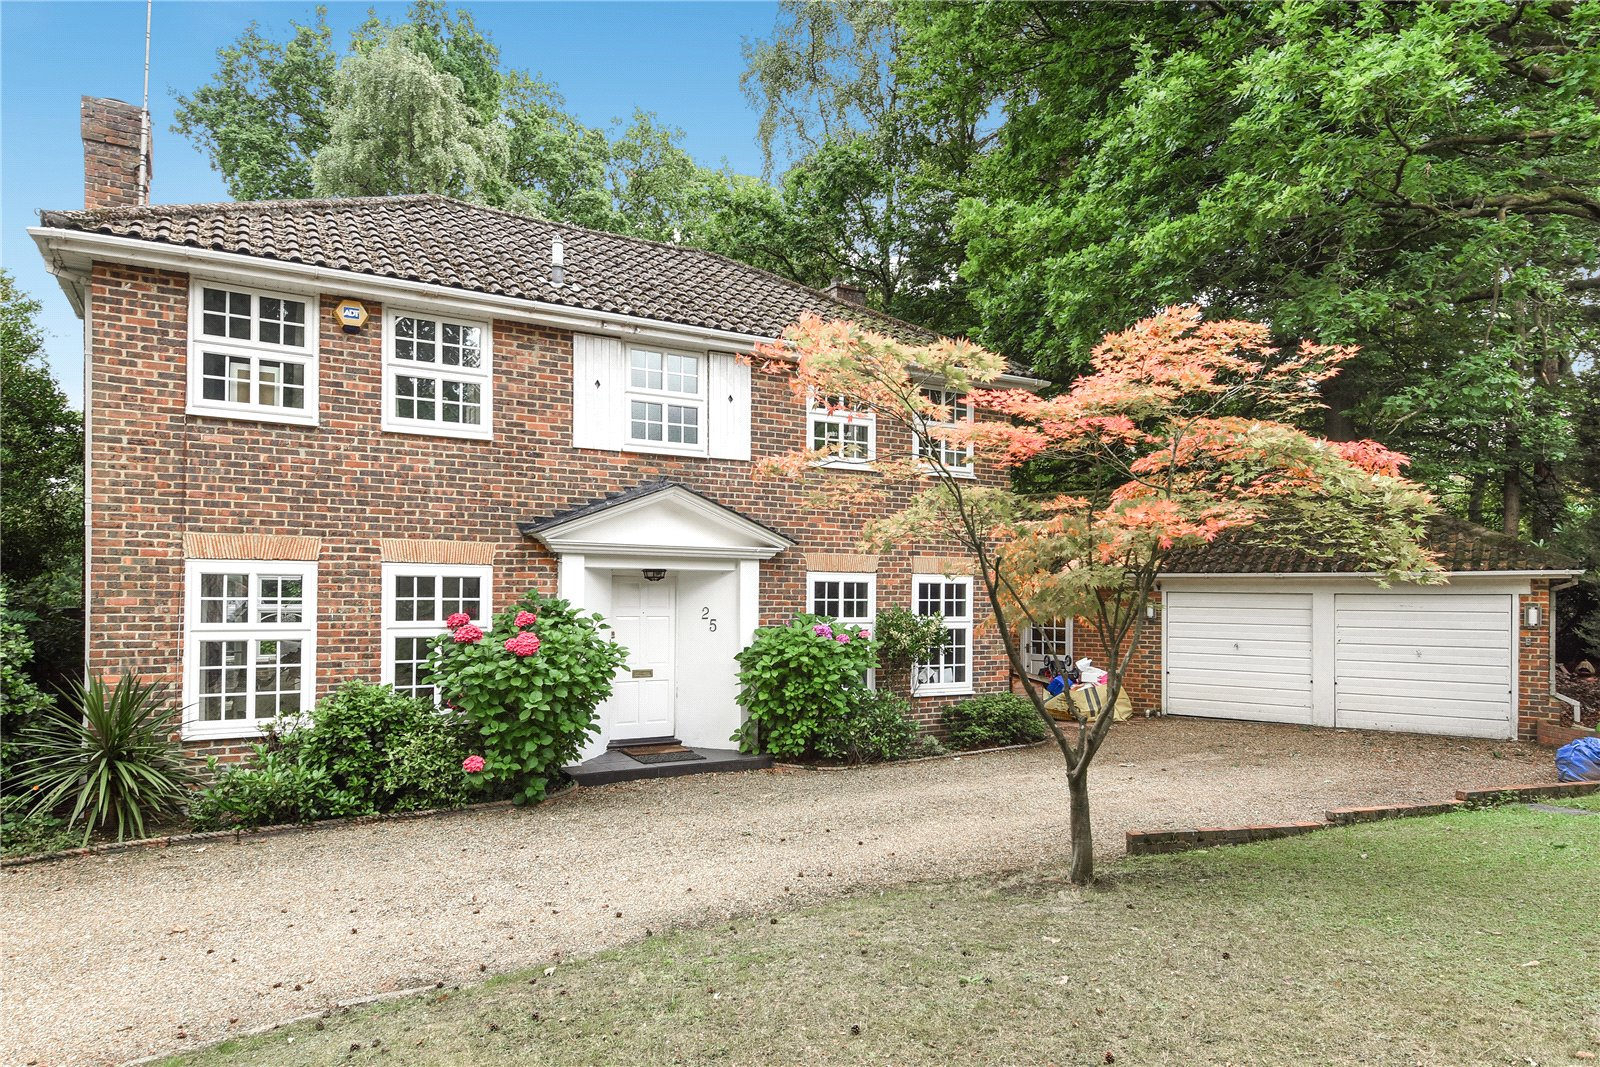 4 Bedrooms Detached House for sale in Castle Road, Camberley, Surrey, GU15